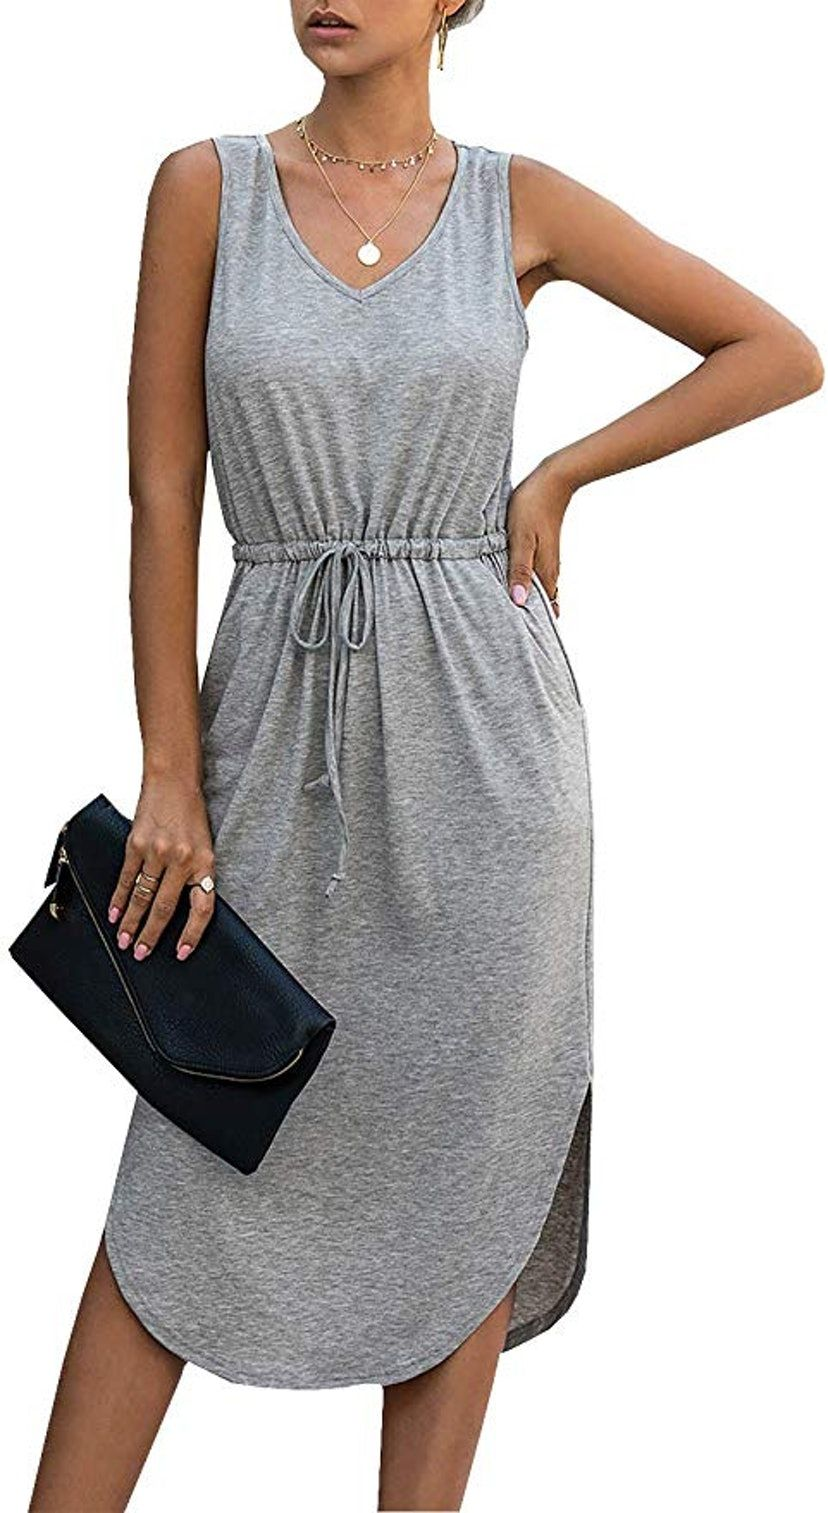 34 Comfortable Pieces That Look Great On Everyone Under Are 30 On Amazon Modest Dresses Casual Casual Dress Grey T Shirt Dress [ 1513 x 828 Pixel ]